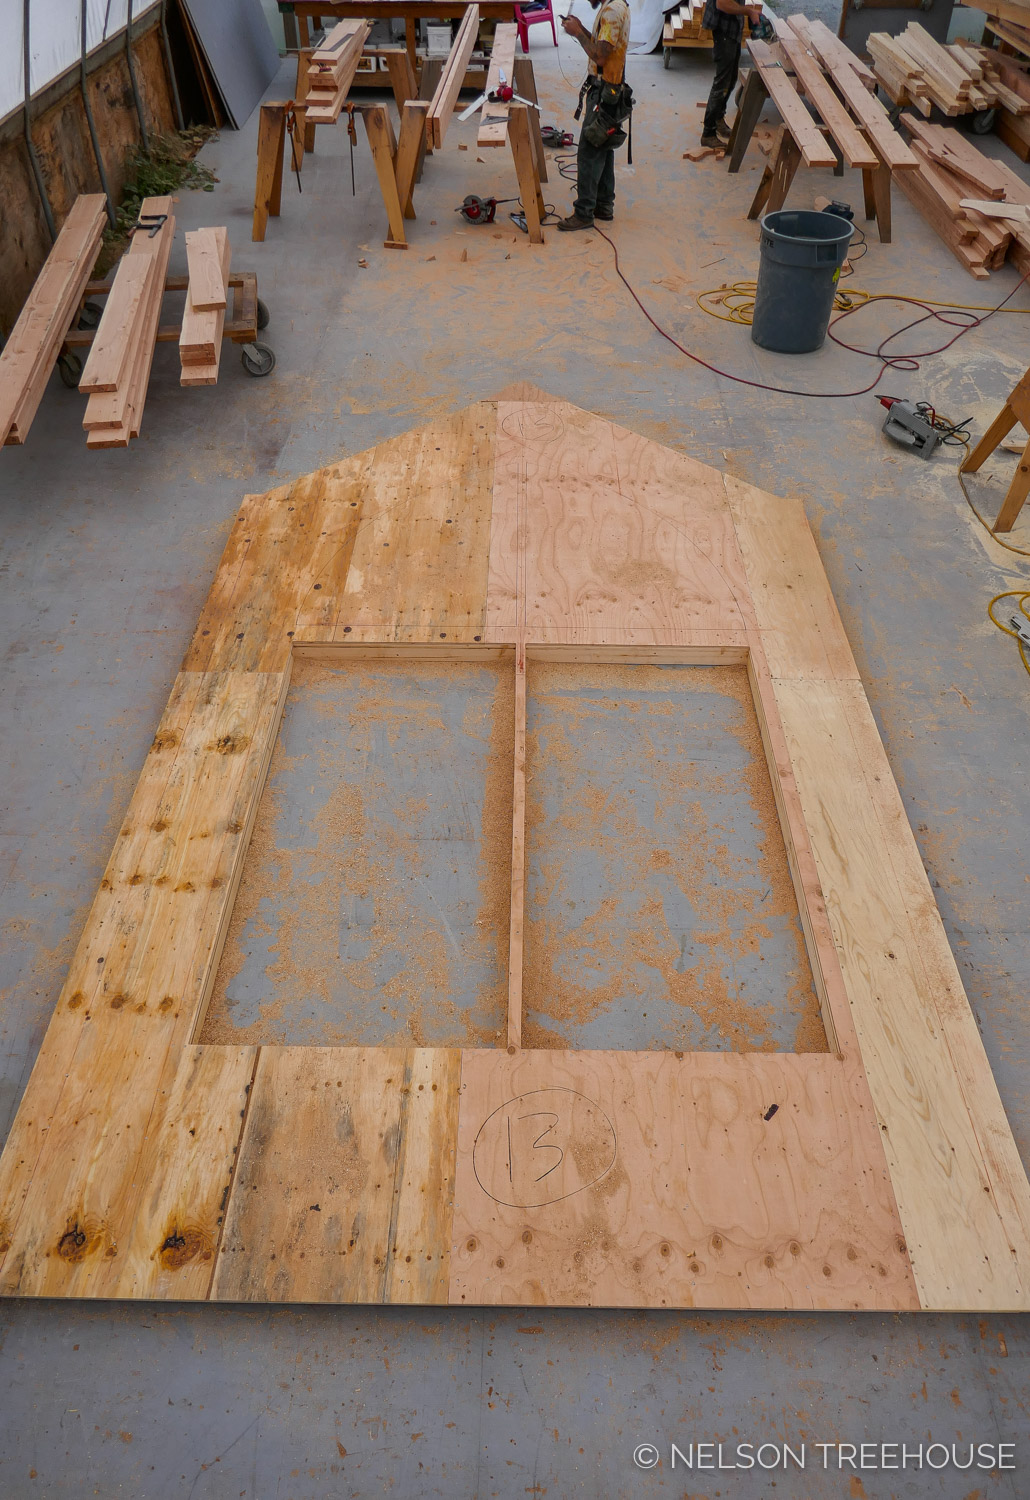 Nelson Treehouse Prefab for Treehouse Utopia - framing for arched window set